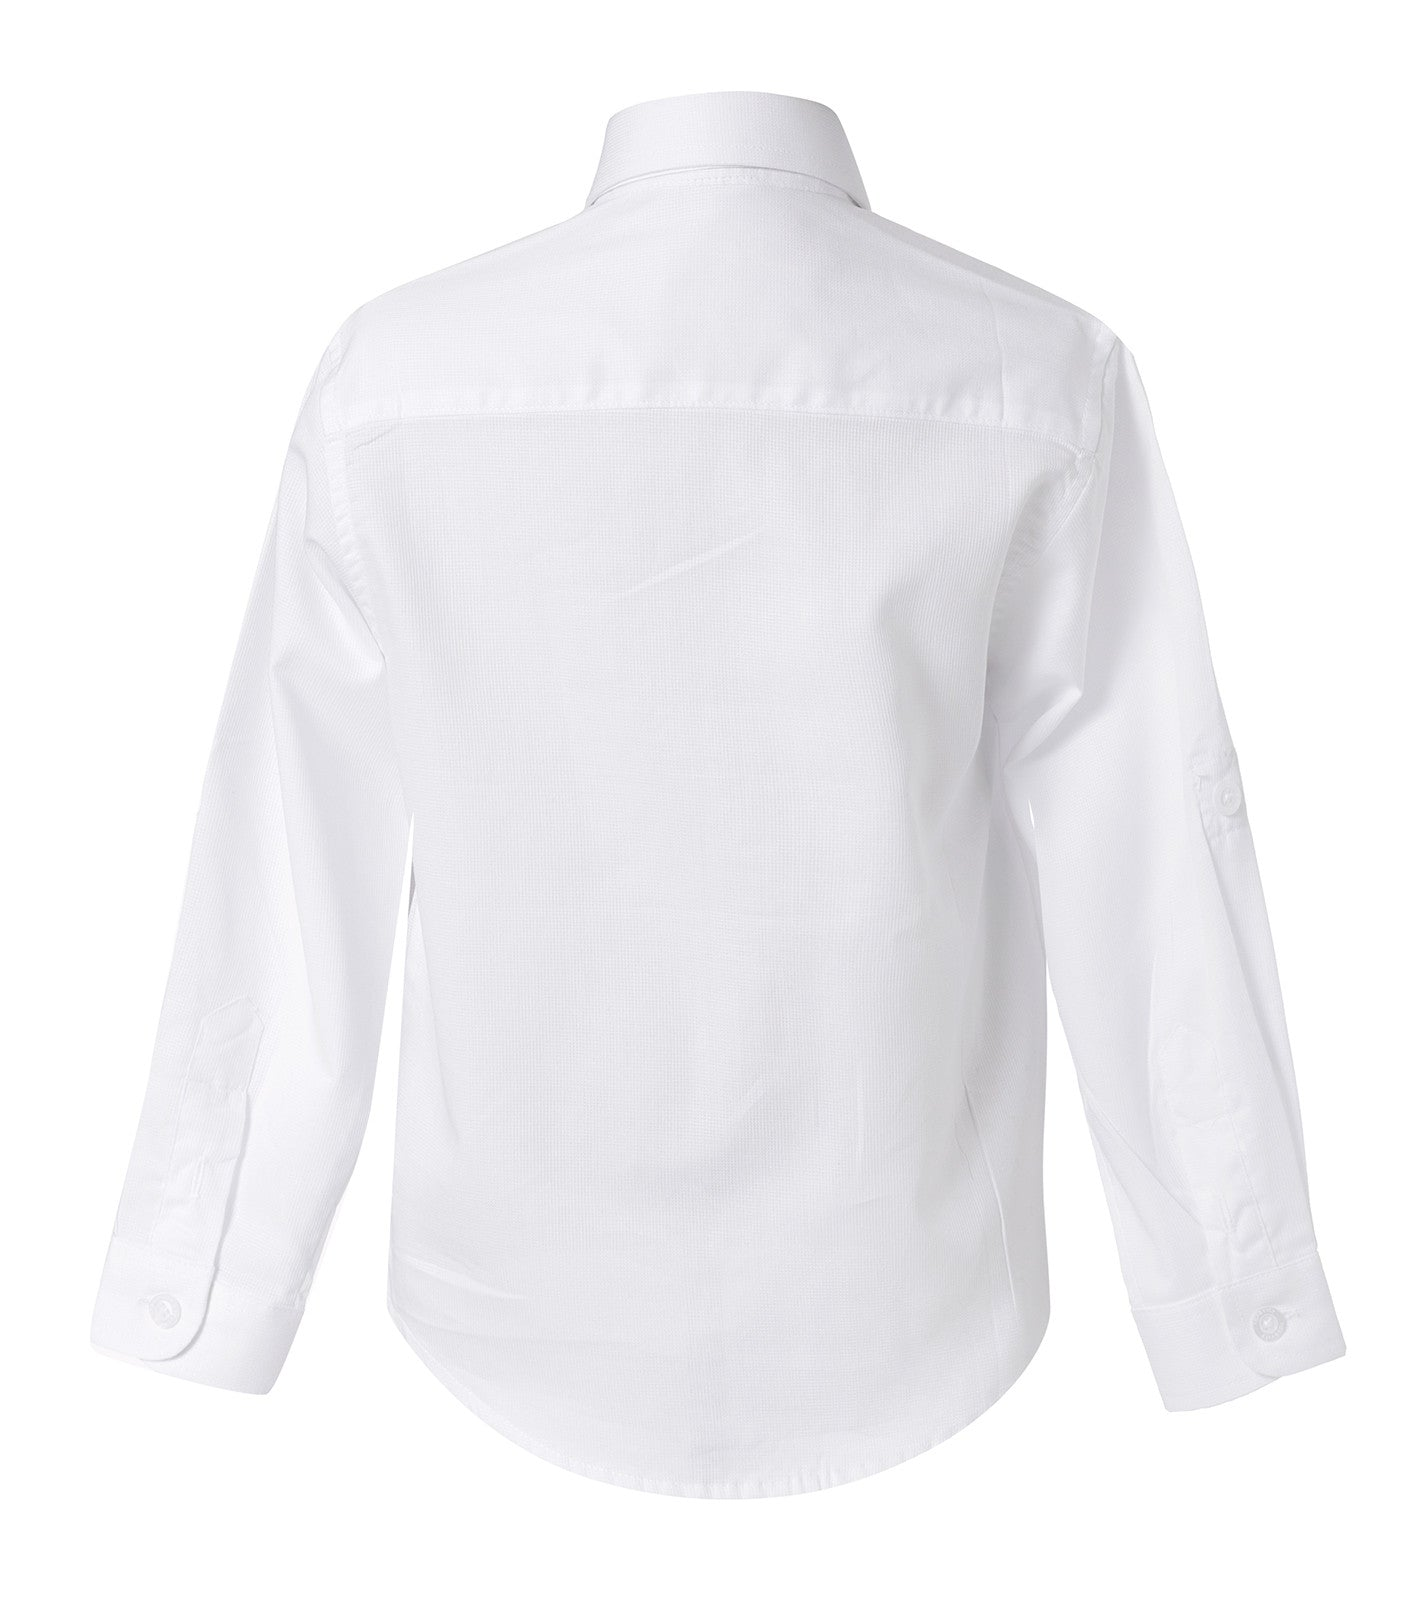 Shirt in white for boys